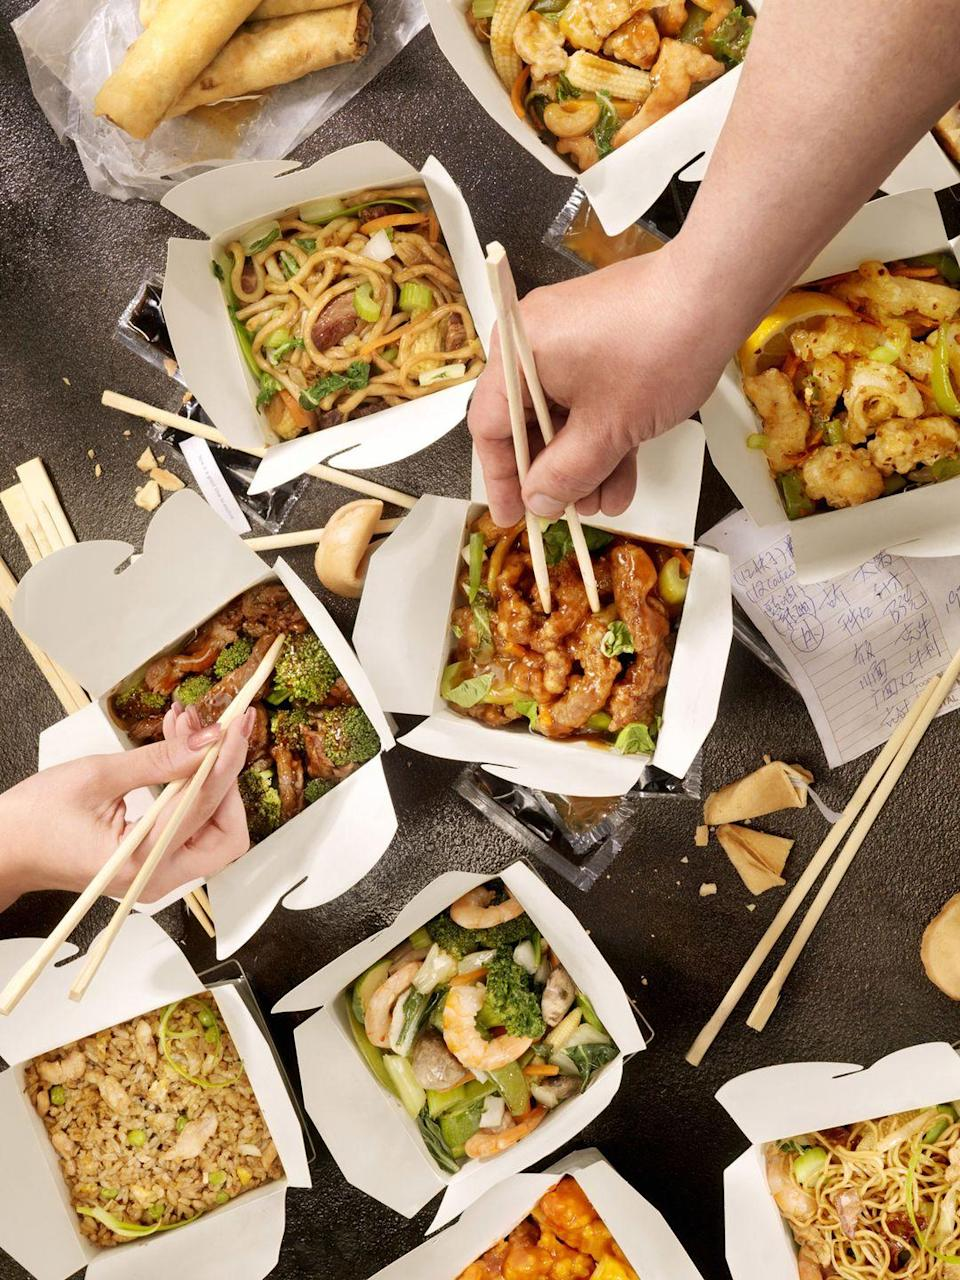 <p>With your annual Christmas Day feast less than 24 hours away, spare yourself added time in the kitchen by ordering takeout from your favorite local restaurant. Serve it up buffet style, so everyone can help themselves!</p>